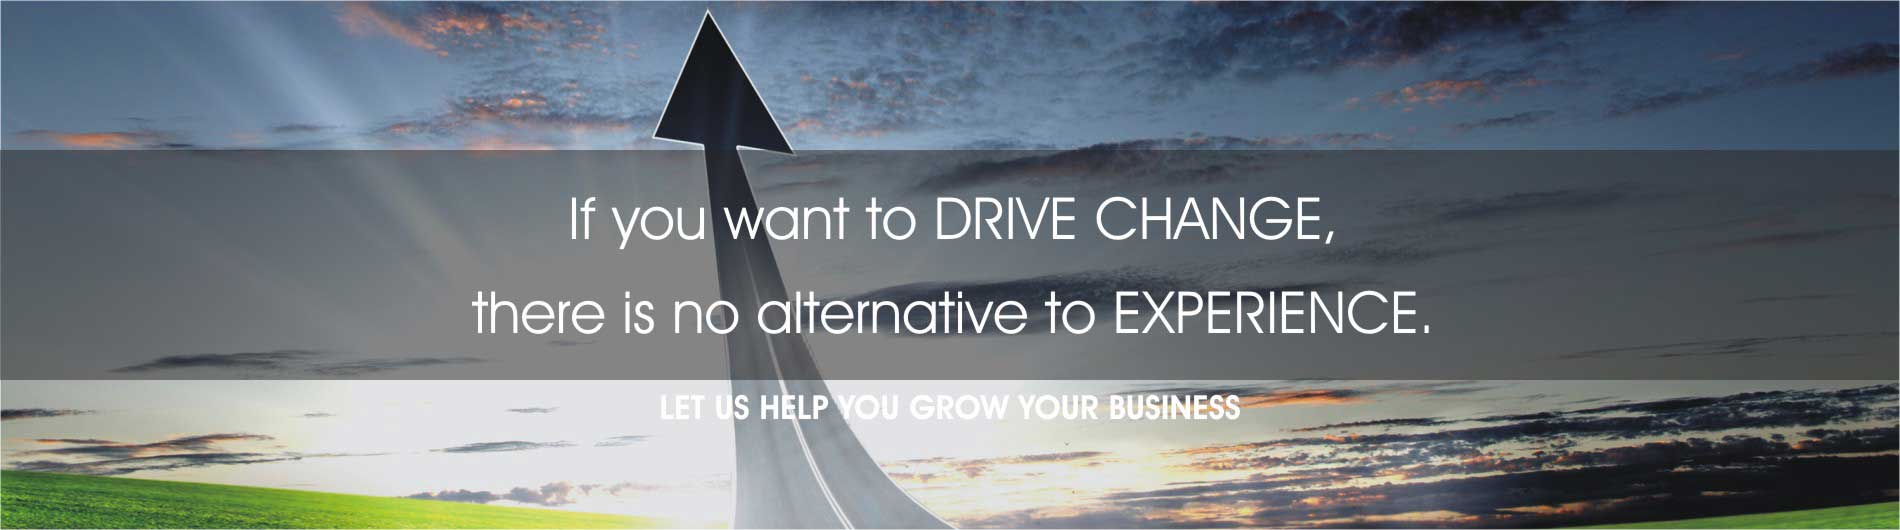 call-to-action7a-drive-change-experience-growth